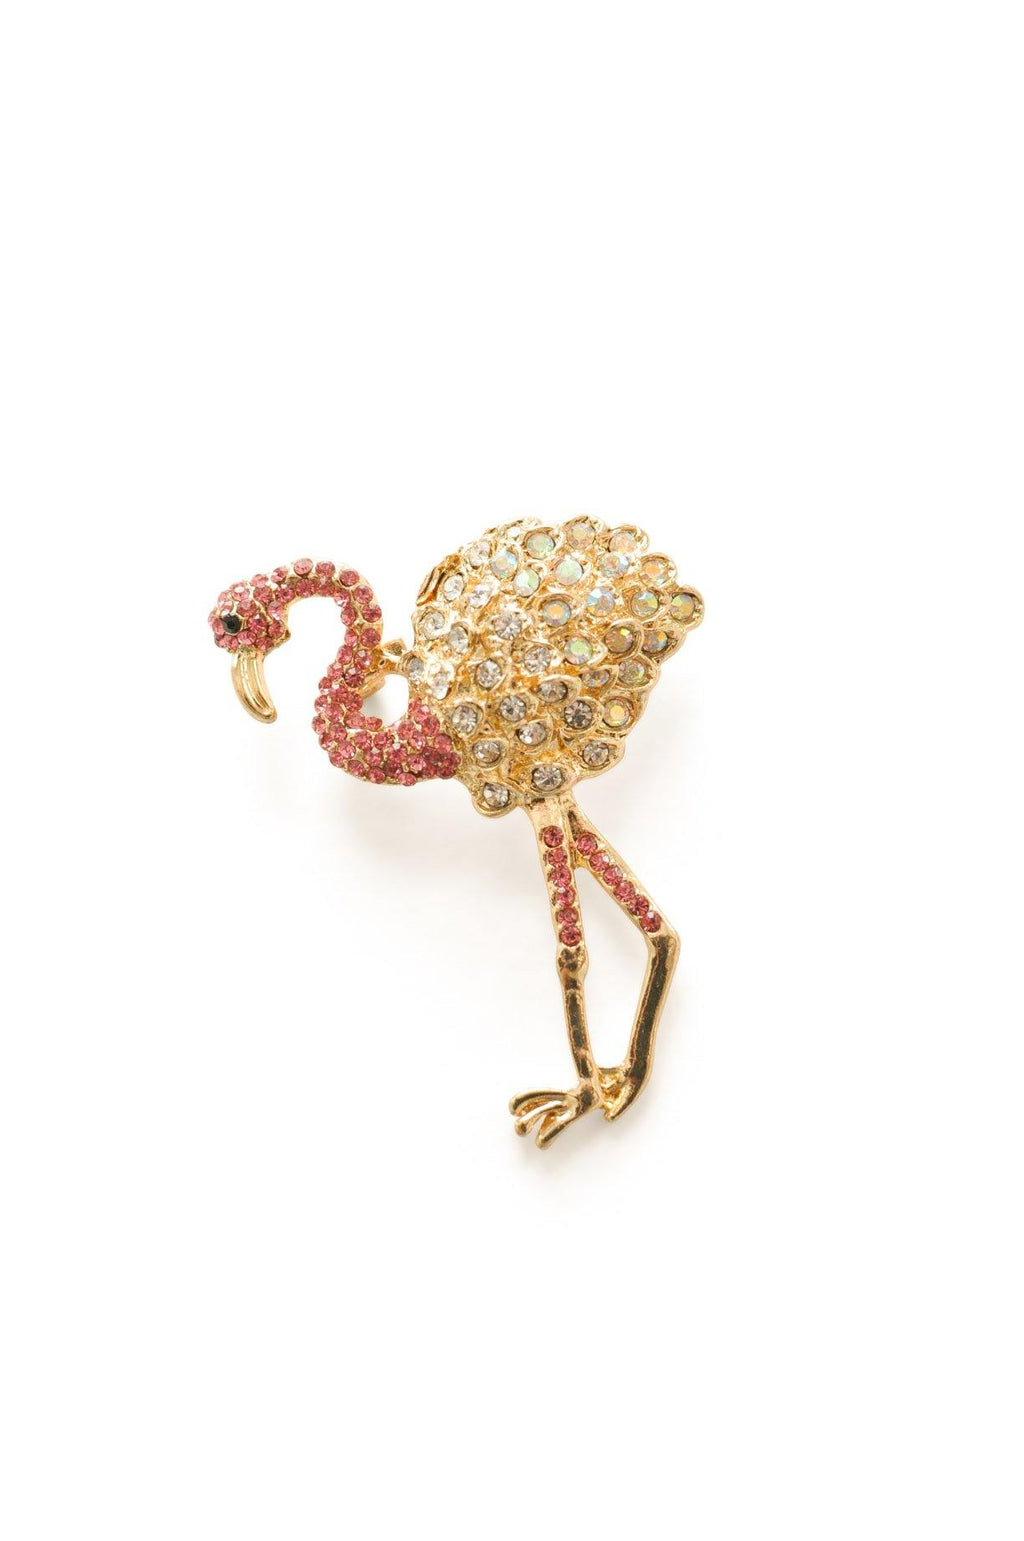 Rhinestone Flamingo Brooch